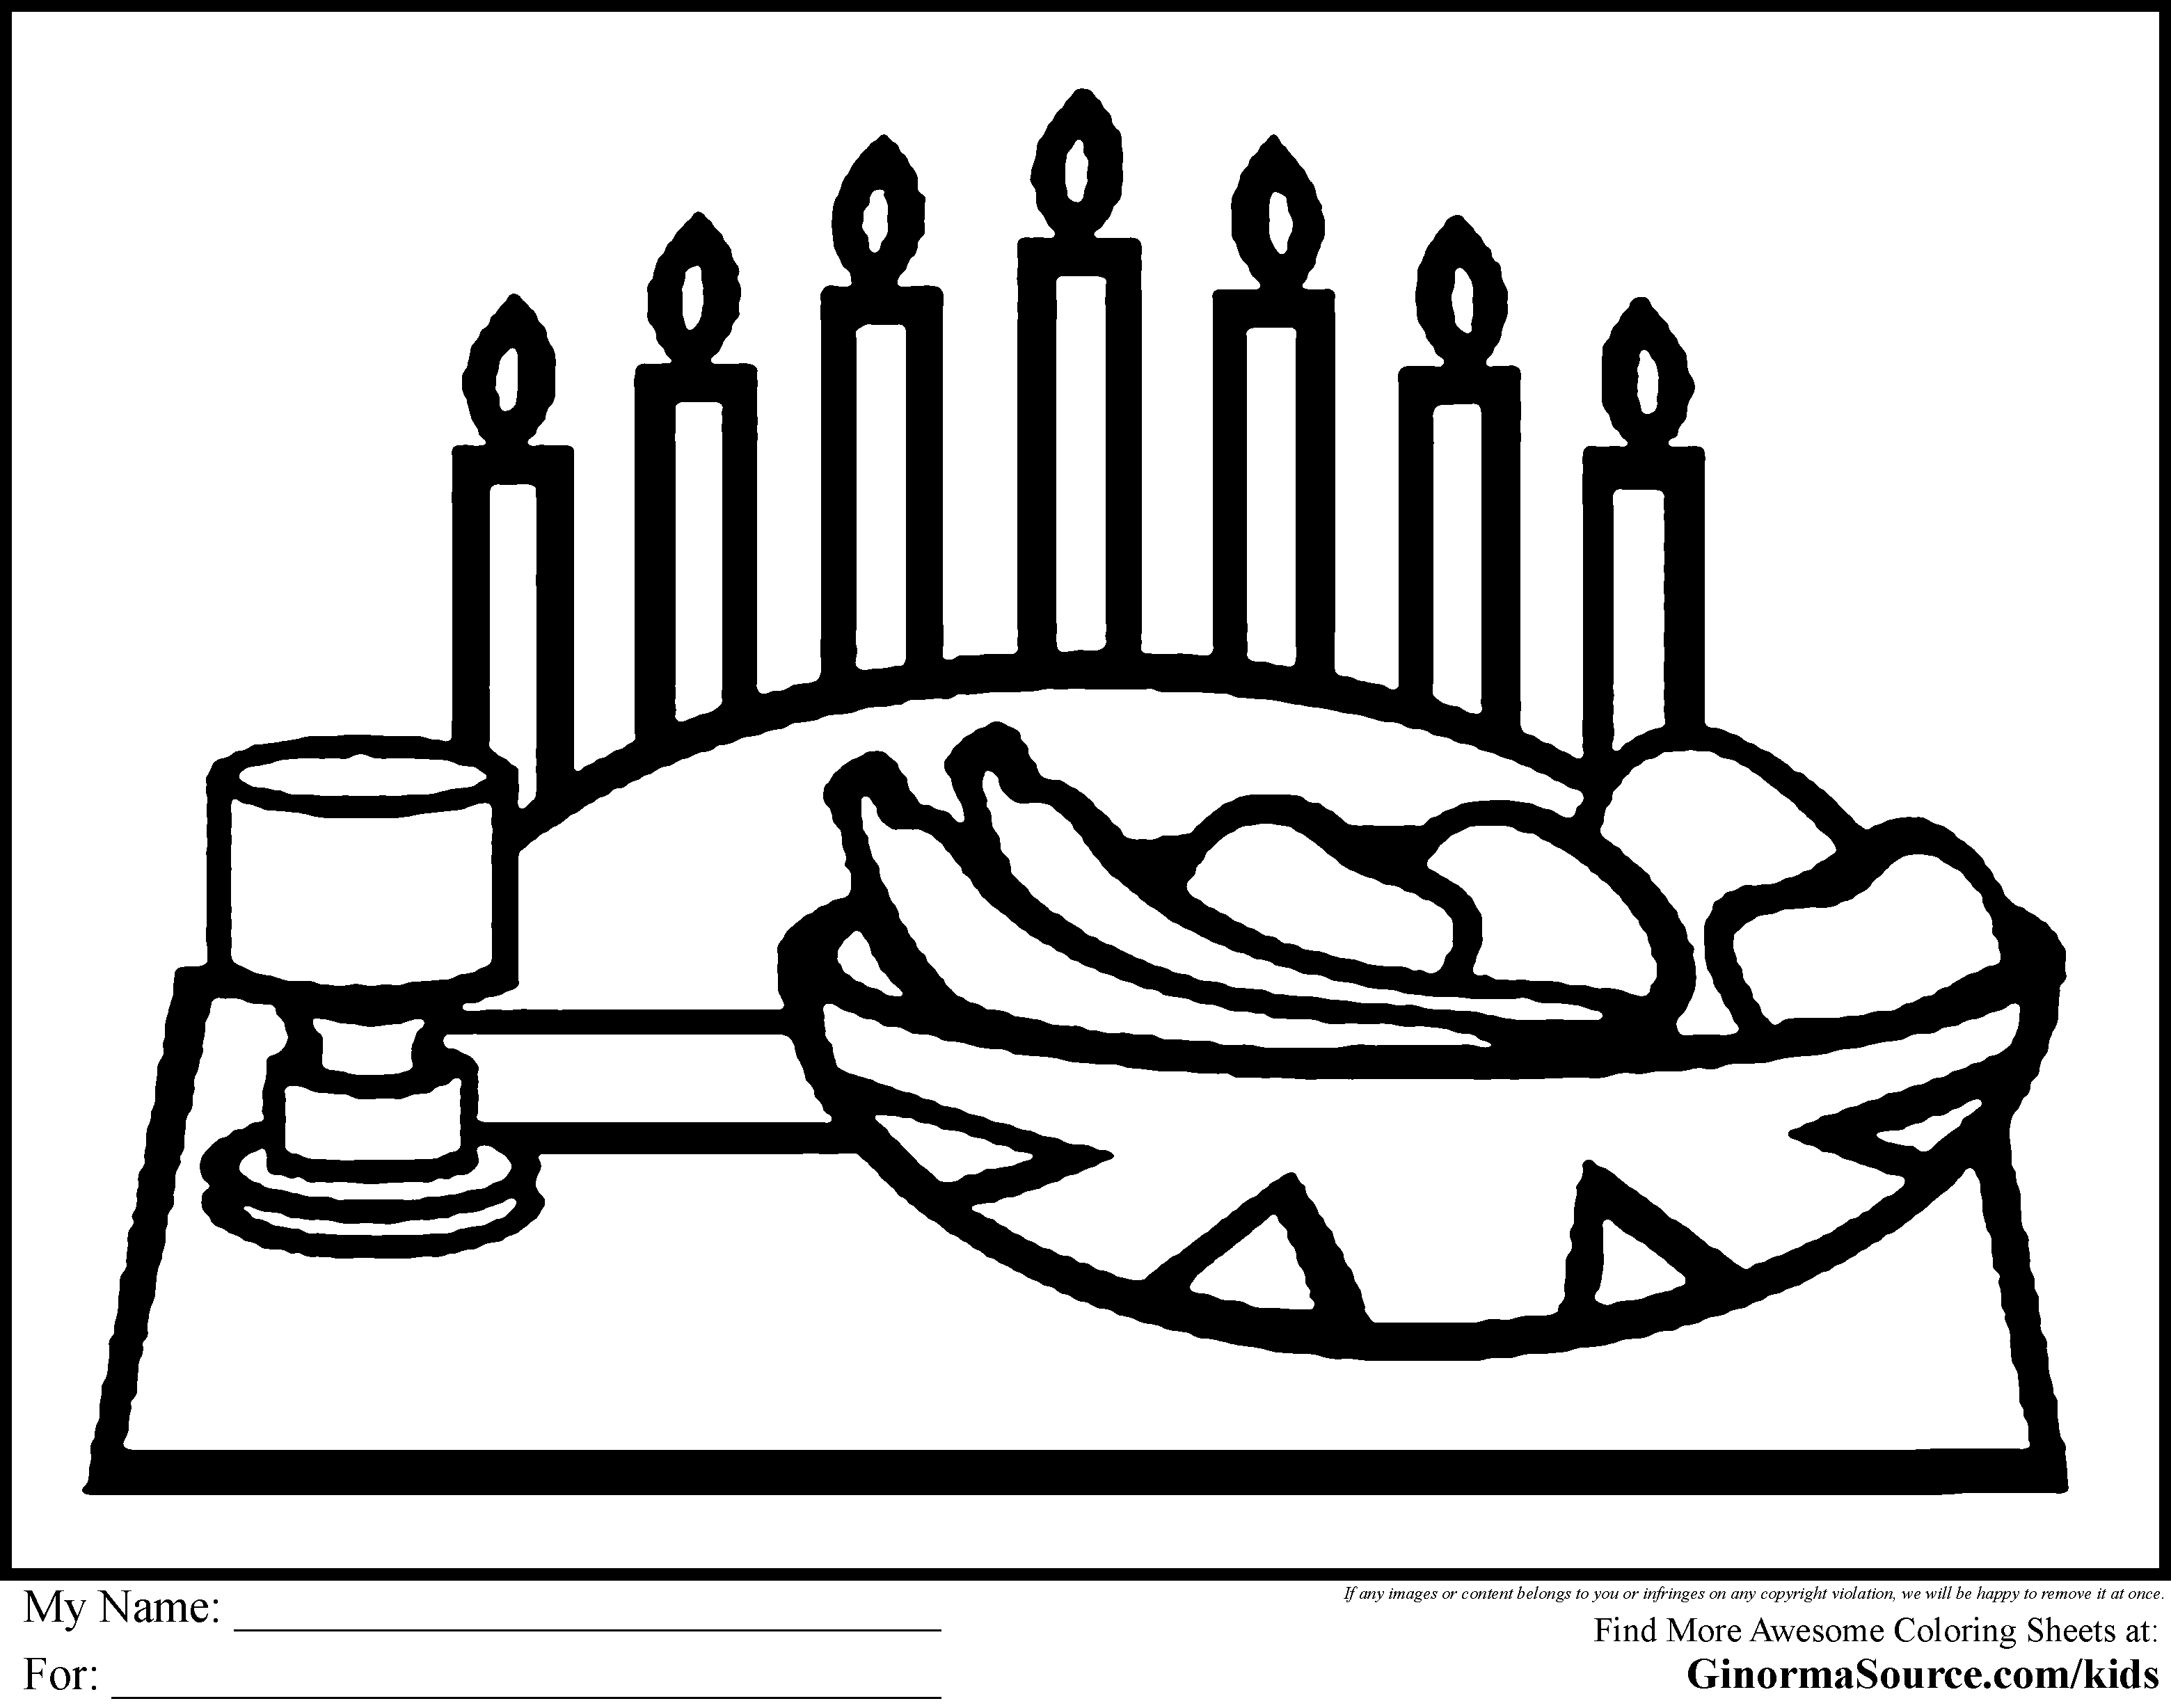 Kwanzaa Coloring Pages Magnificent Kwanzaa Coloring Pages For Kids  Kwanzaa  Pinterest  Kwanzaa Decorating Inspiration